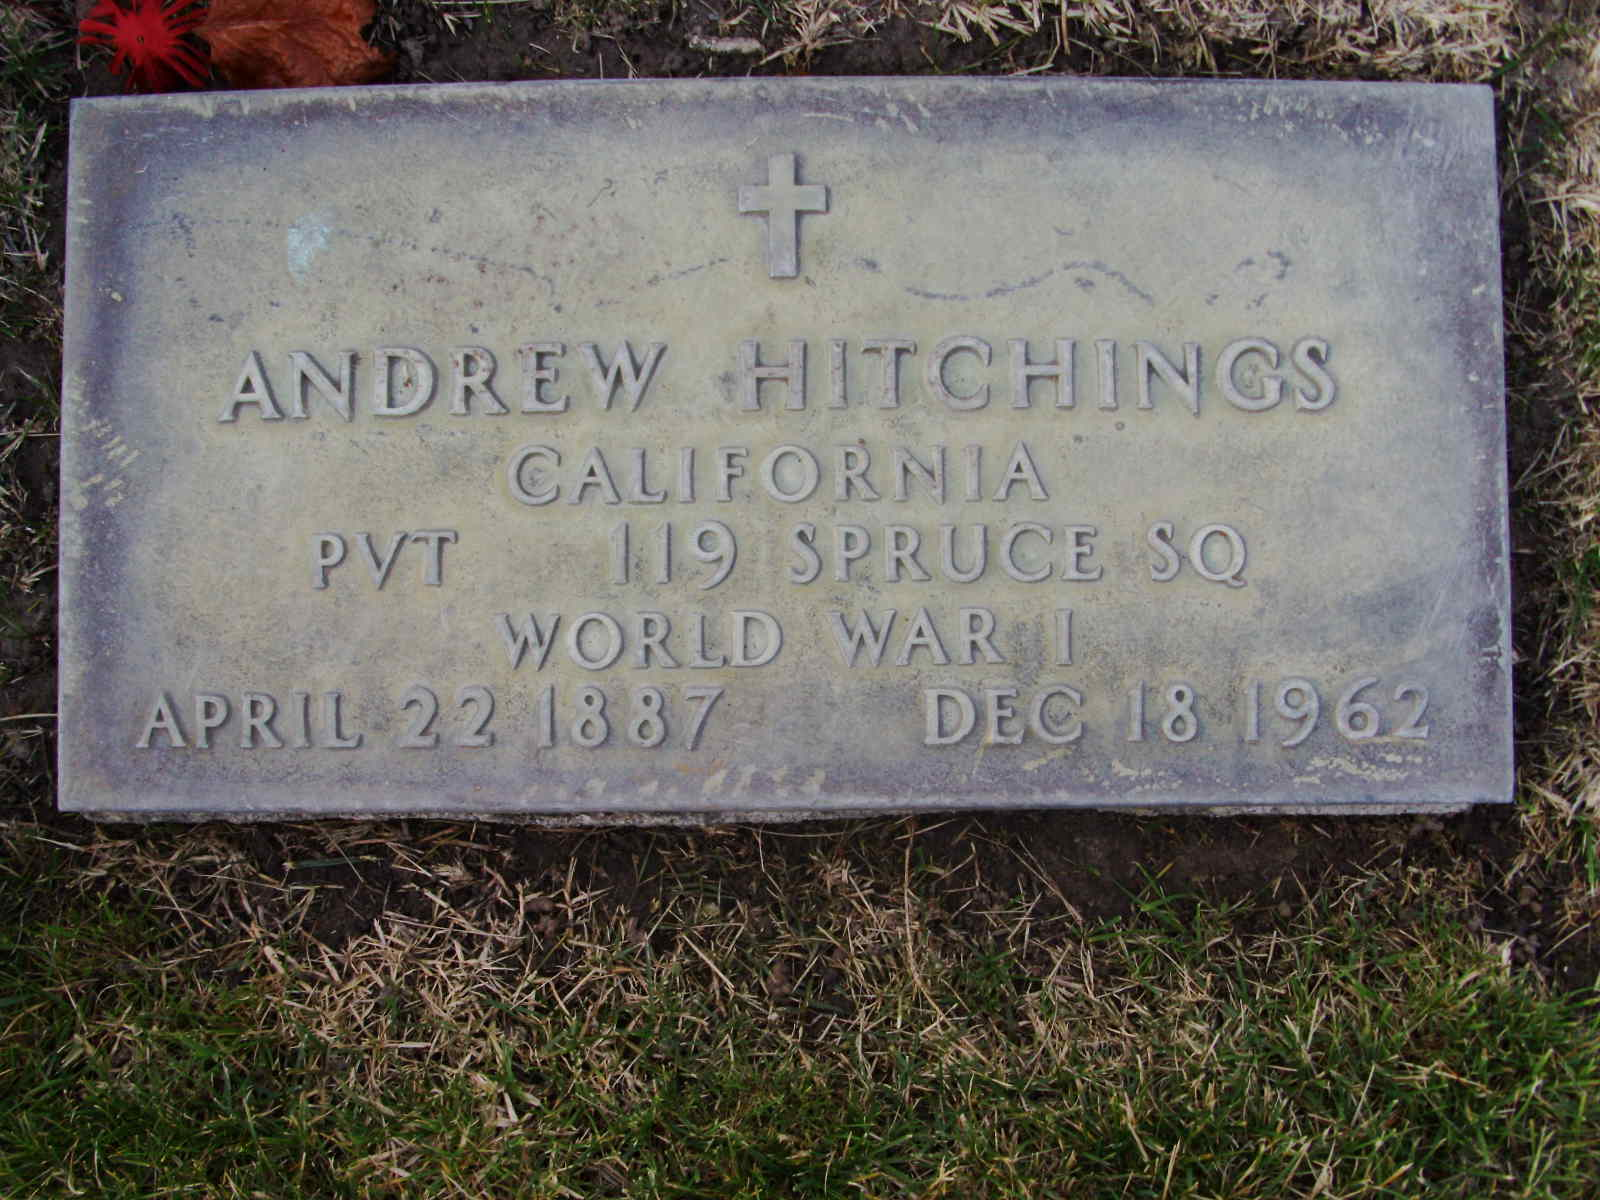 [Andrew Hitchings]